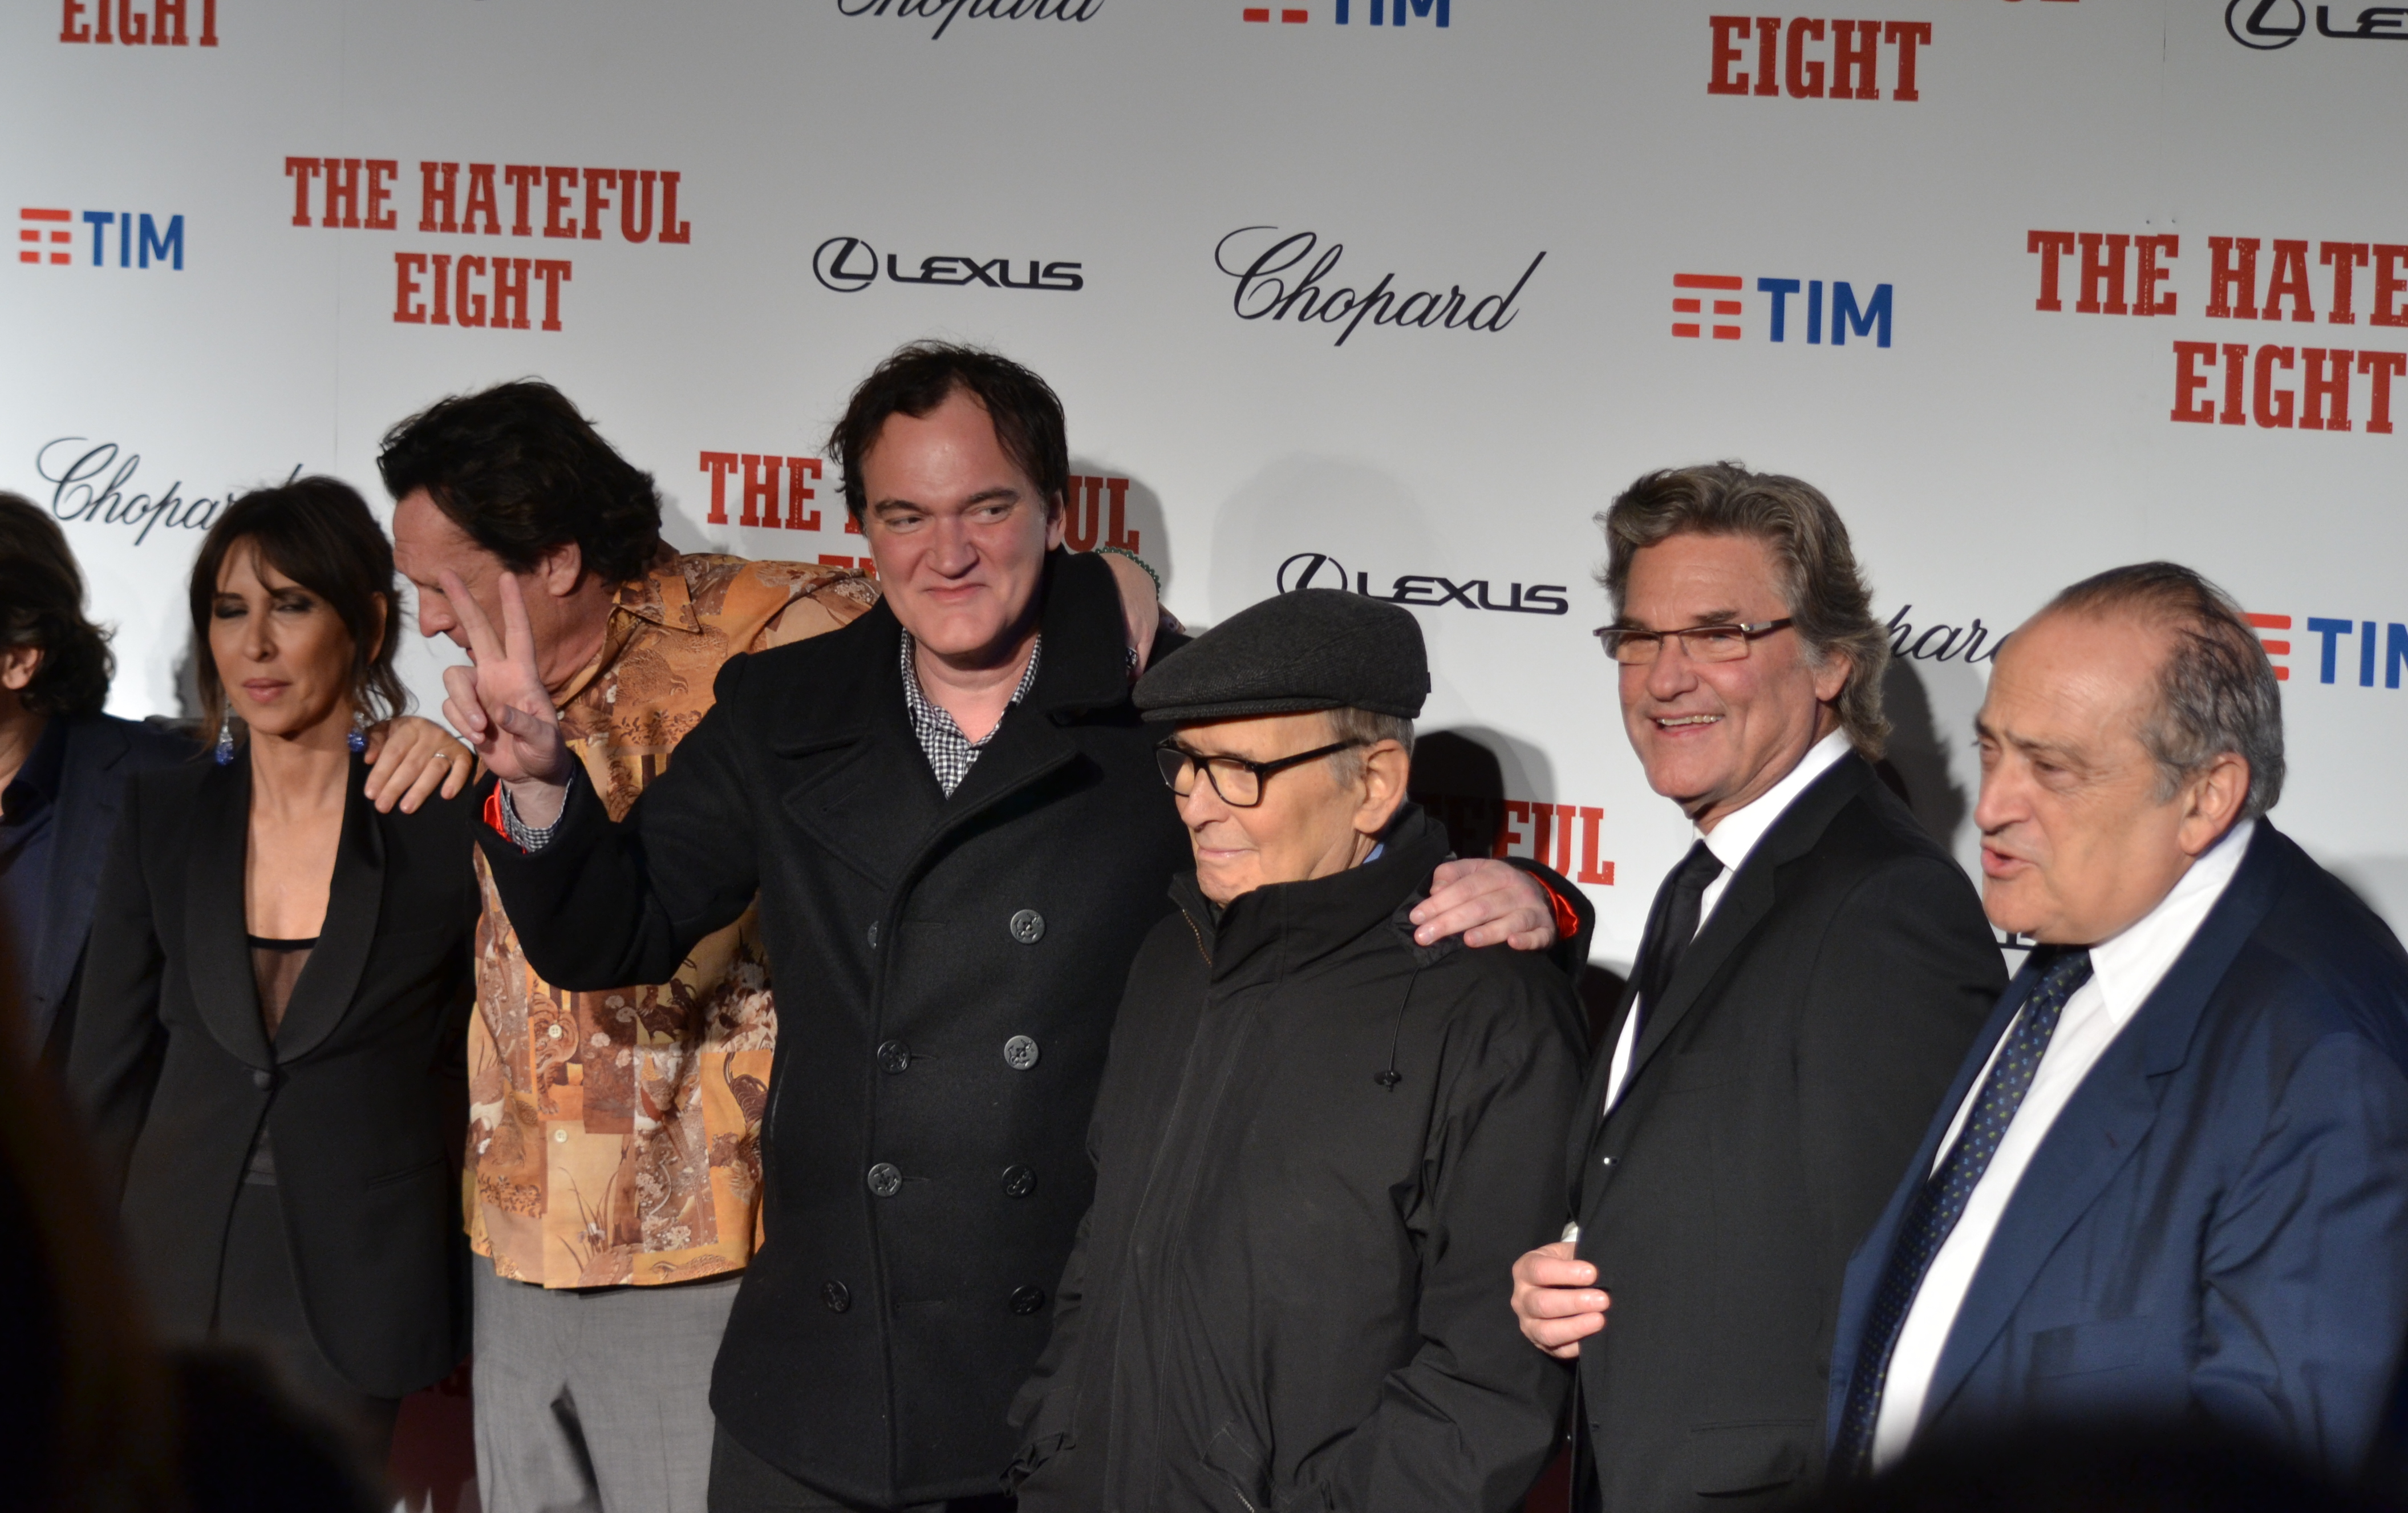 Quentin Tarantino, Kurt Russel, Mchael Madsen e il maestro Ennio Morricone sul red carpet di The Hateful Eight